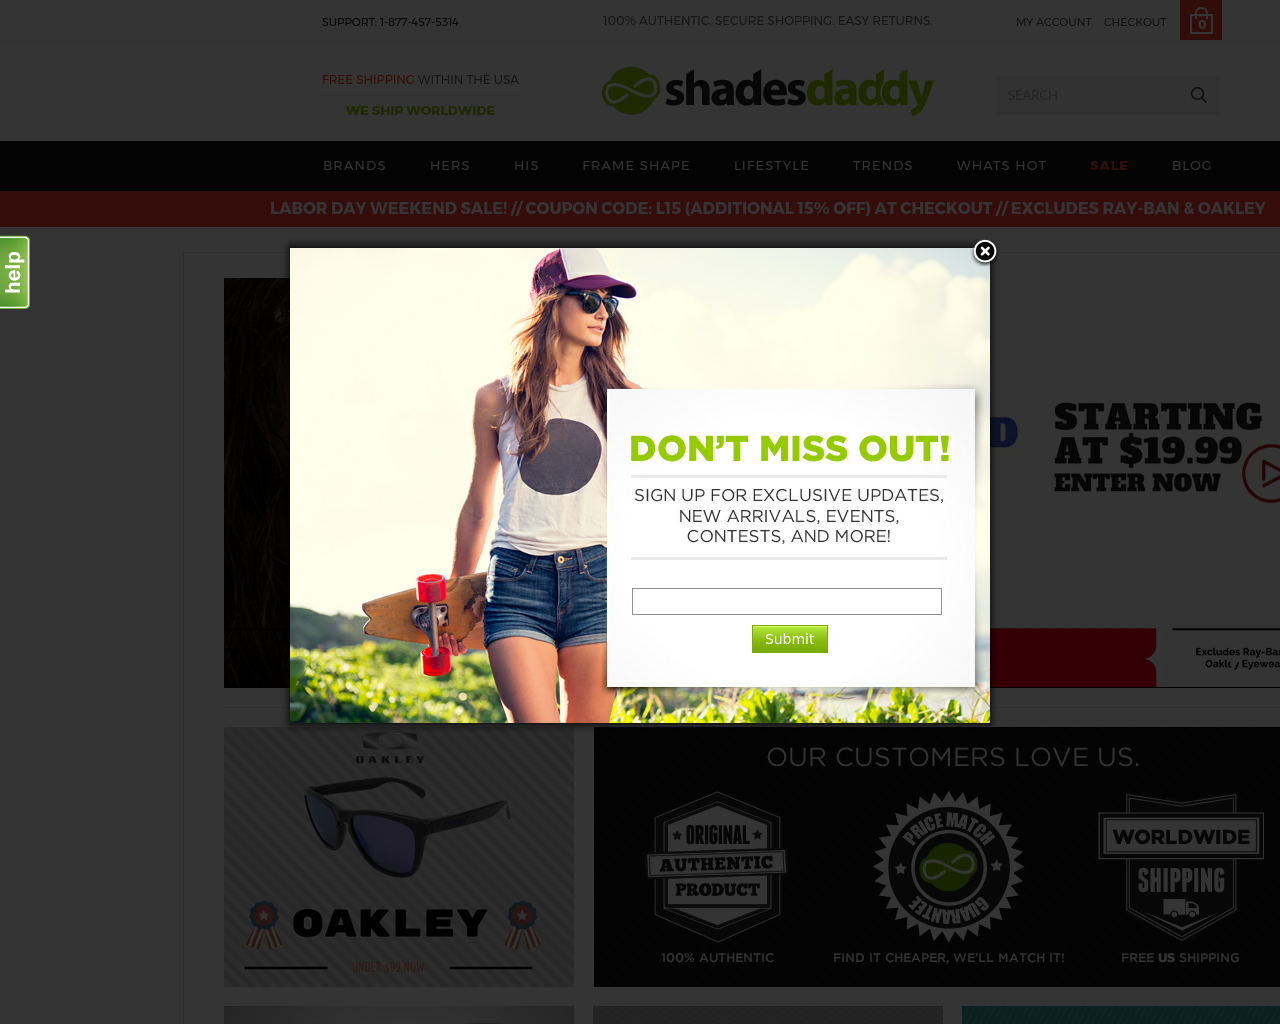 Shades-Daddy-Advertising-Reviews-Pricing